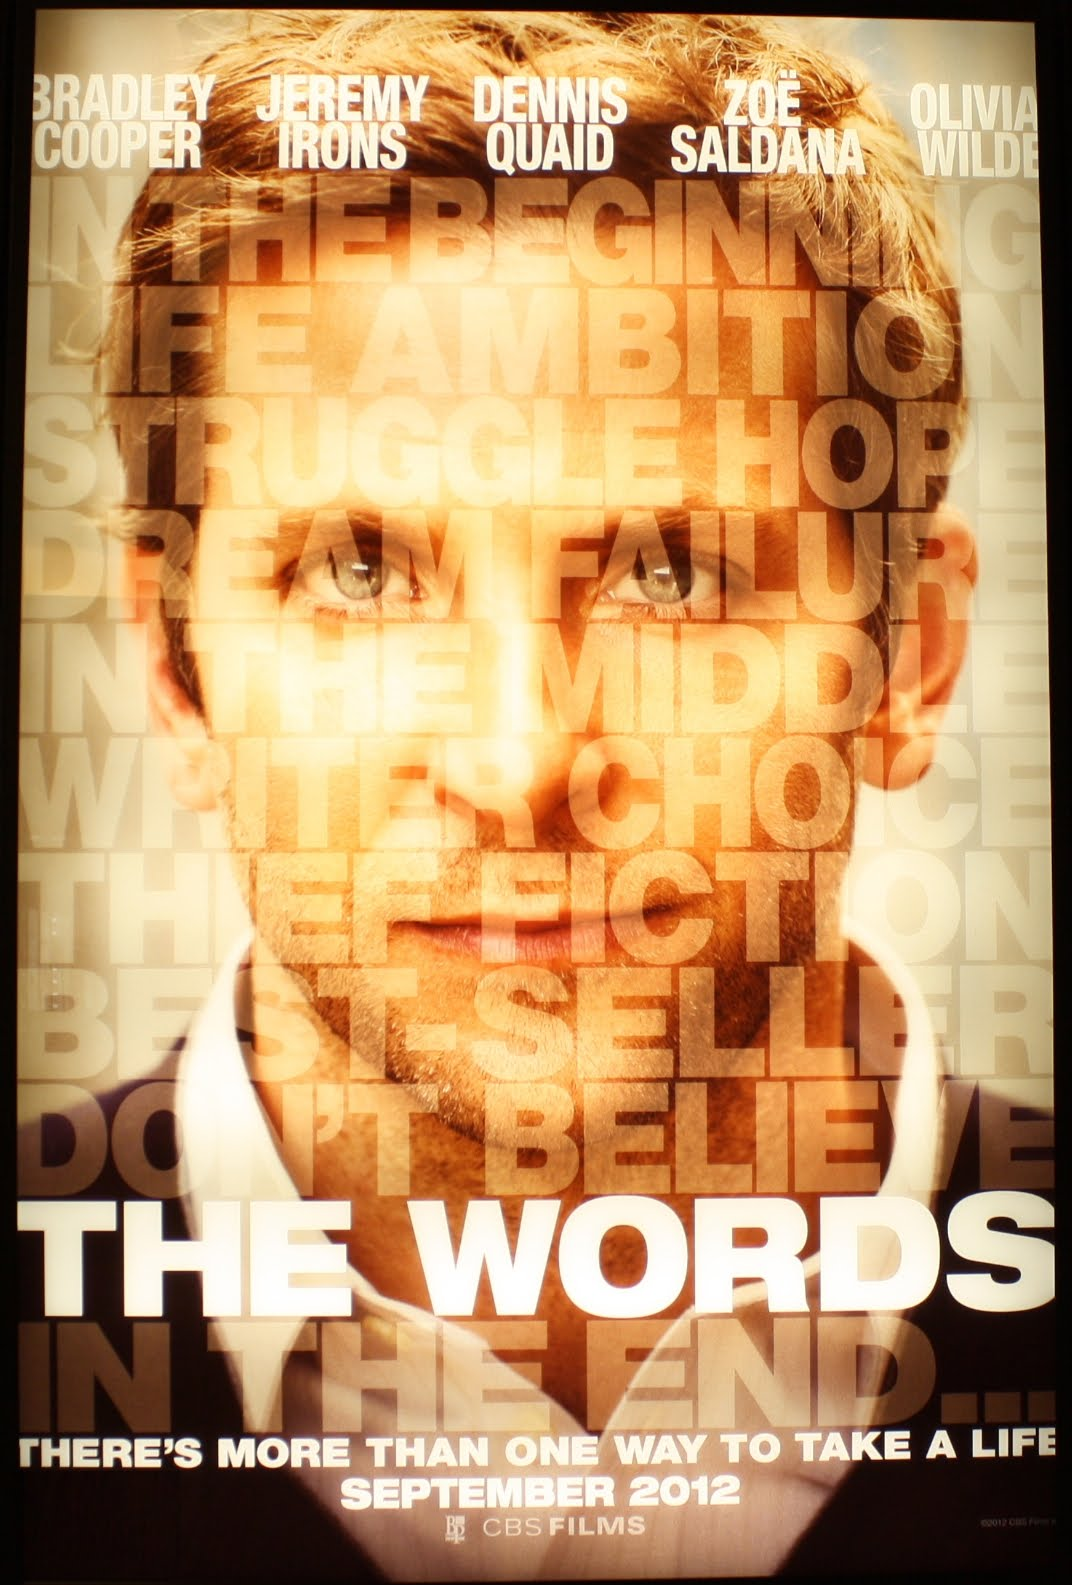 http://2.bp.blogspot.com/-PpKC6vB5TXo/T8b1xS_wyAI/AAAAAAAAAAQ/OAfyQEgDsHI/s1600/the-words-movie-poster.jpg